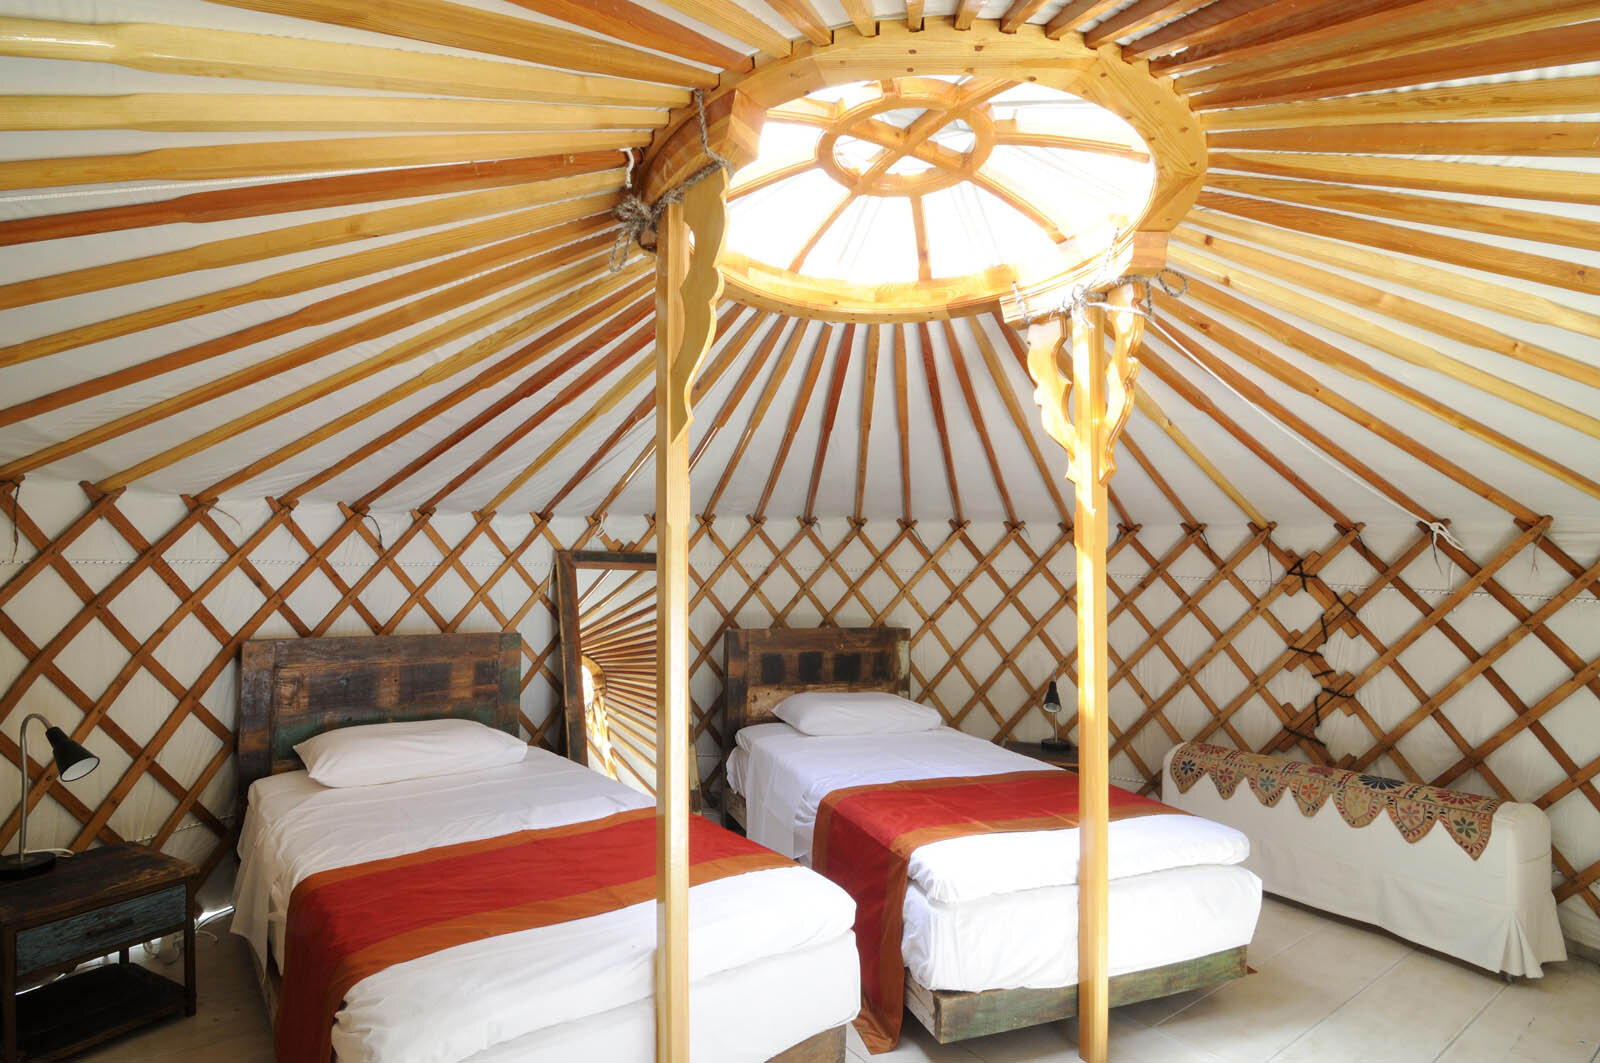 Mongolian Yurt - Shared Twin - $2850 (per person - you'll be paired with another sister in our group)This traditional Mongolian yurt is the nearest one to the outdoor living area, with a removable roof cap built for star gazing. The indoor bathroom with a shower and two wash bowls is semi open planned.